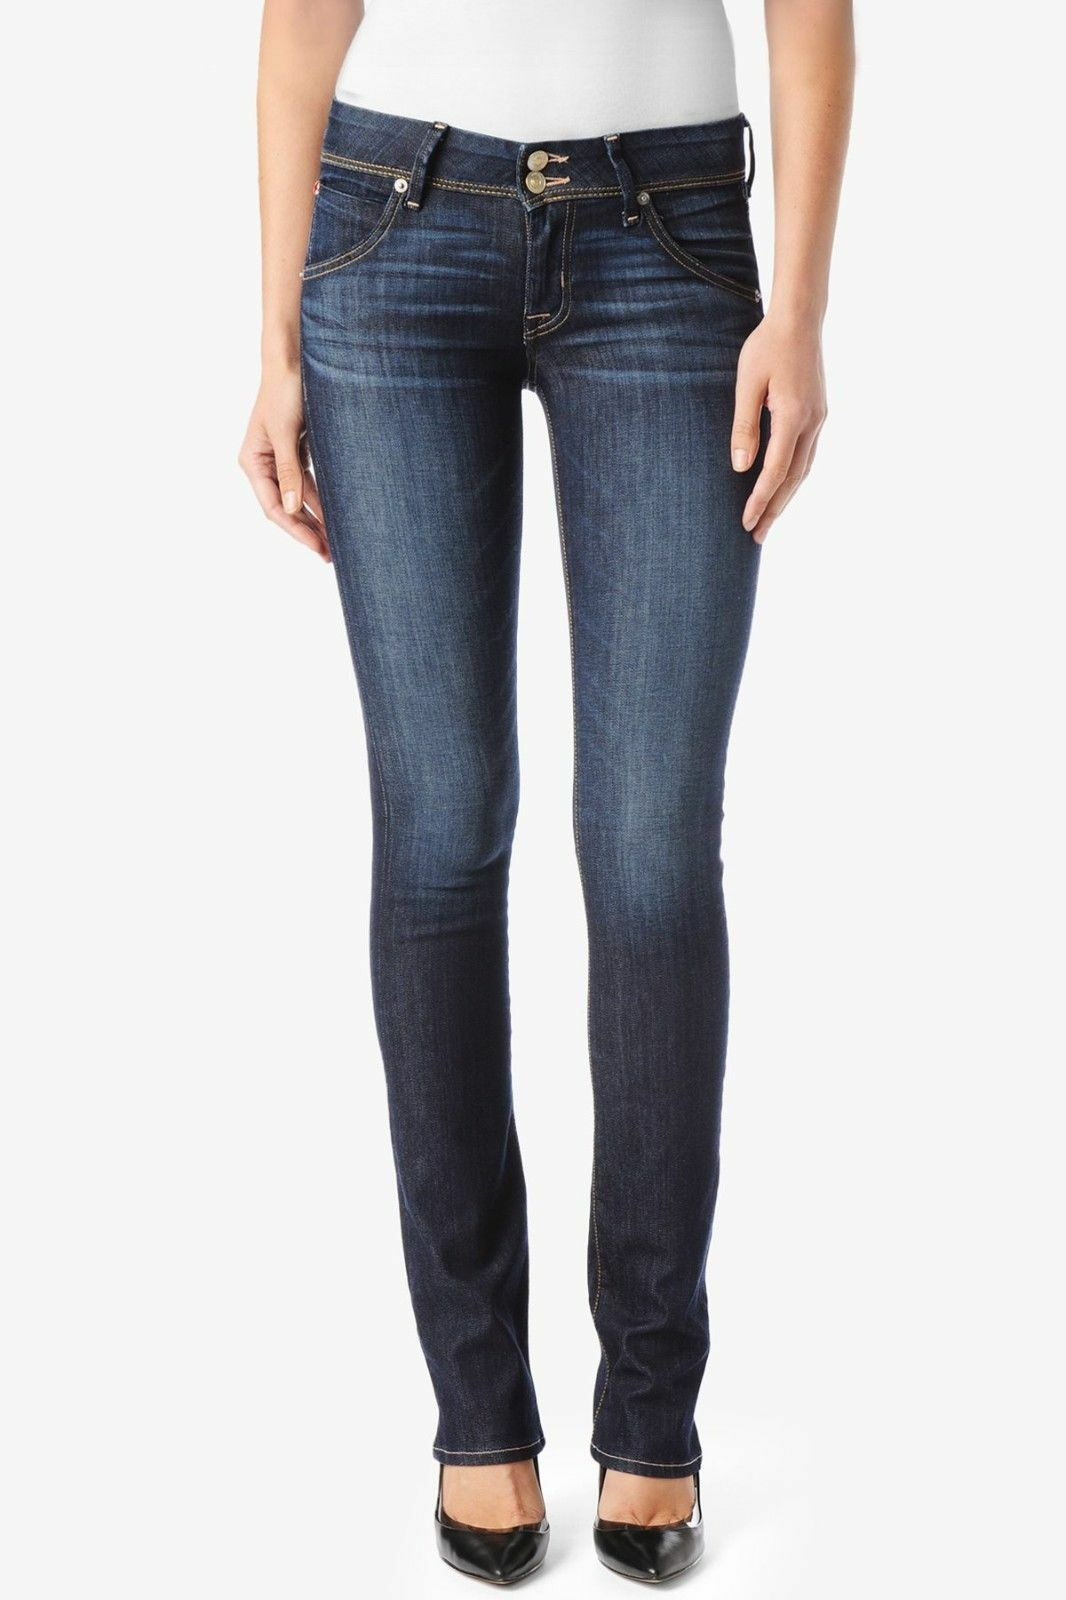 Top Brand Jeans For Women